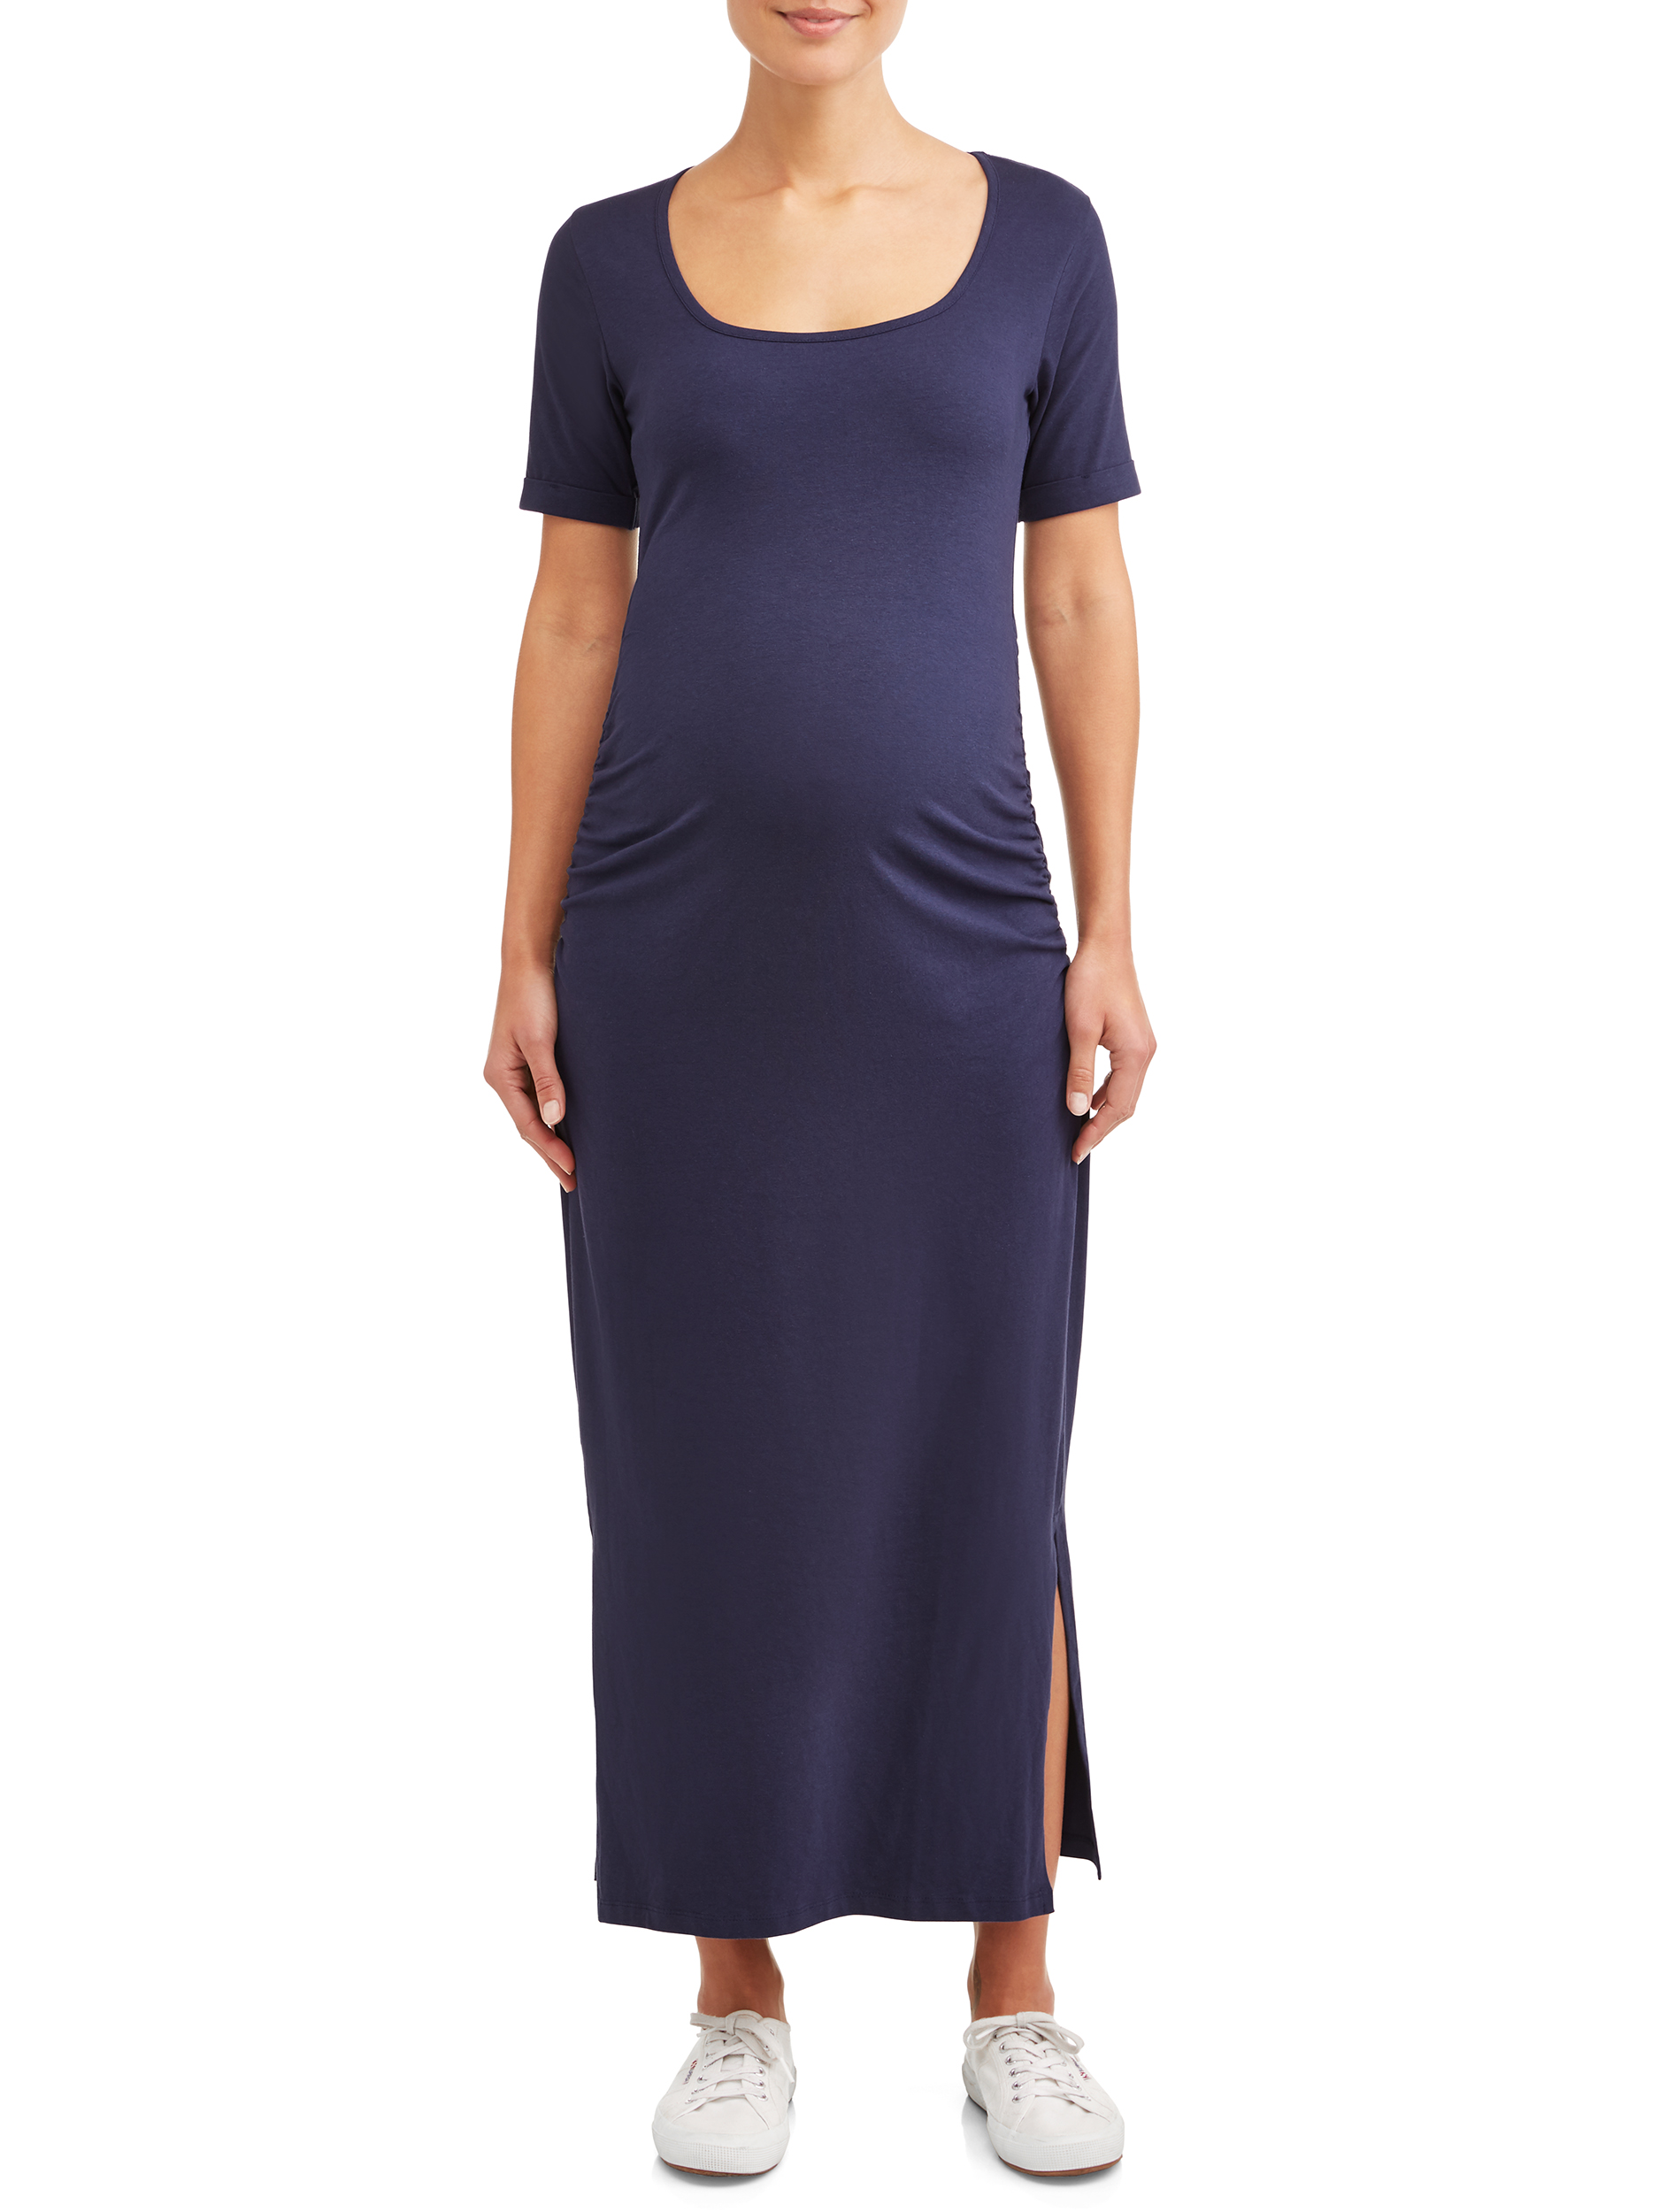 Maternity Short Sleeved Maxi Dress - Available in Plus Sizes